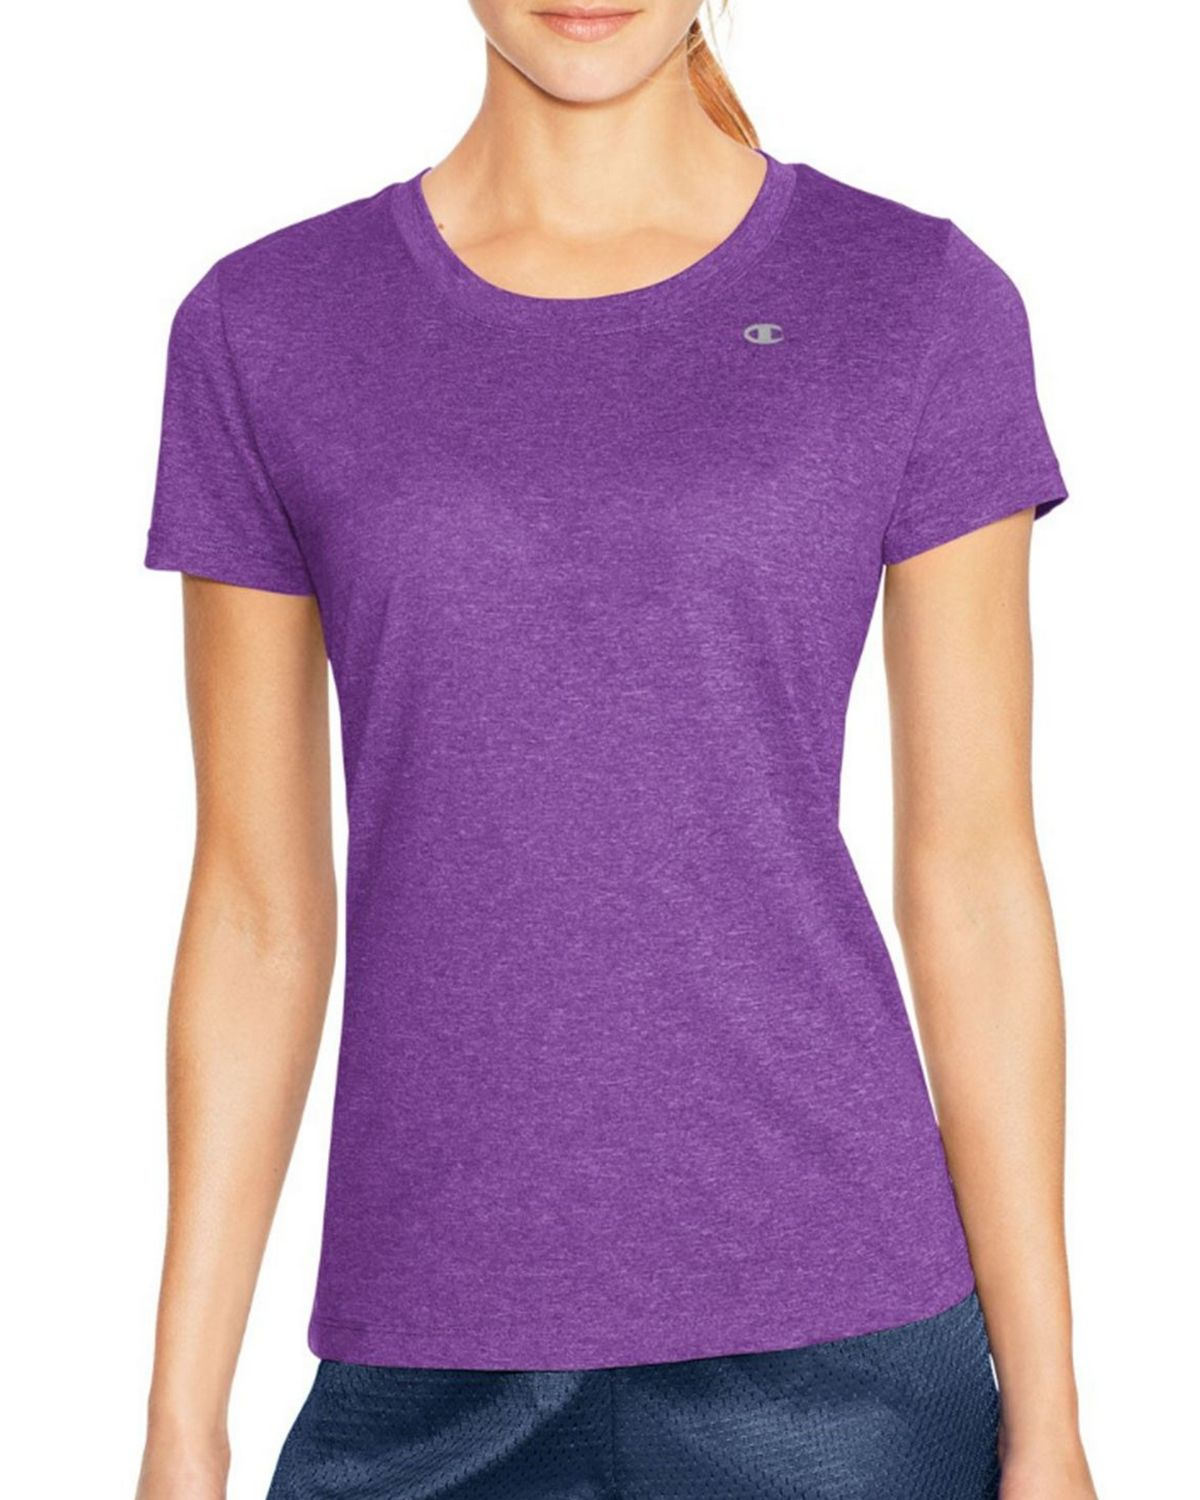 Champion 7963 Vapor PowerTrain Short Sleeve Heather Tee - Purple Reef Heather - L 7963